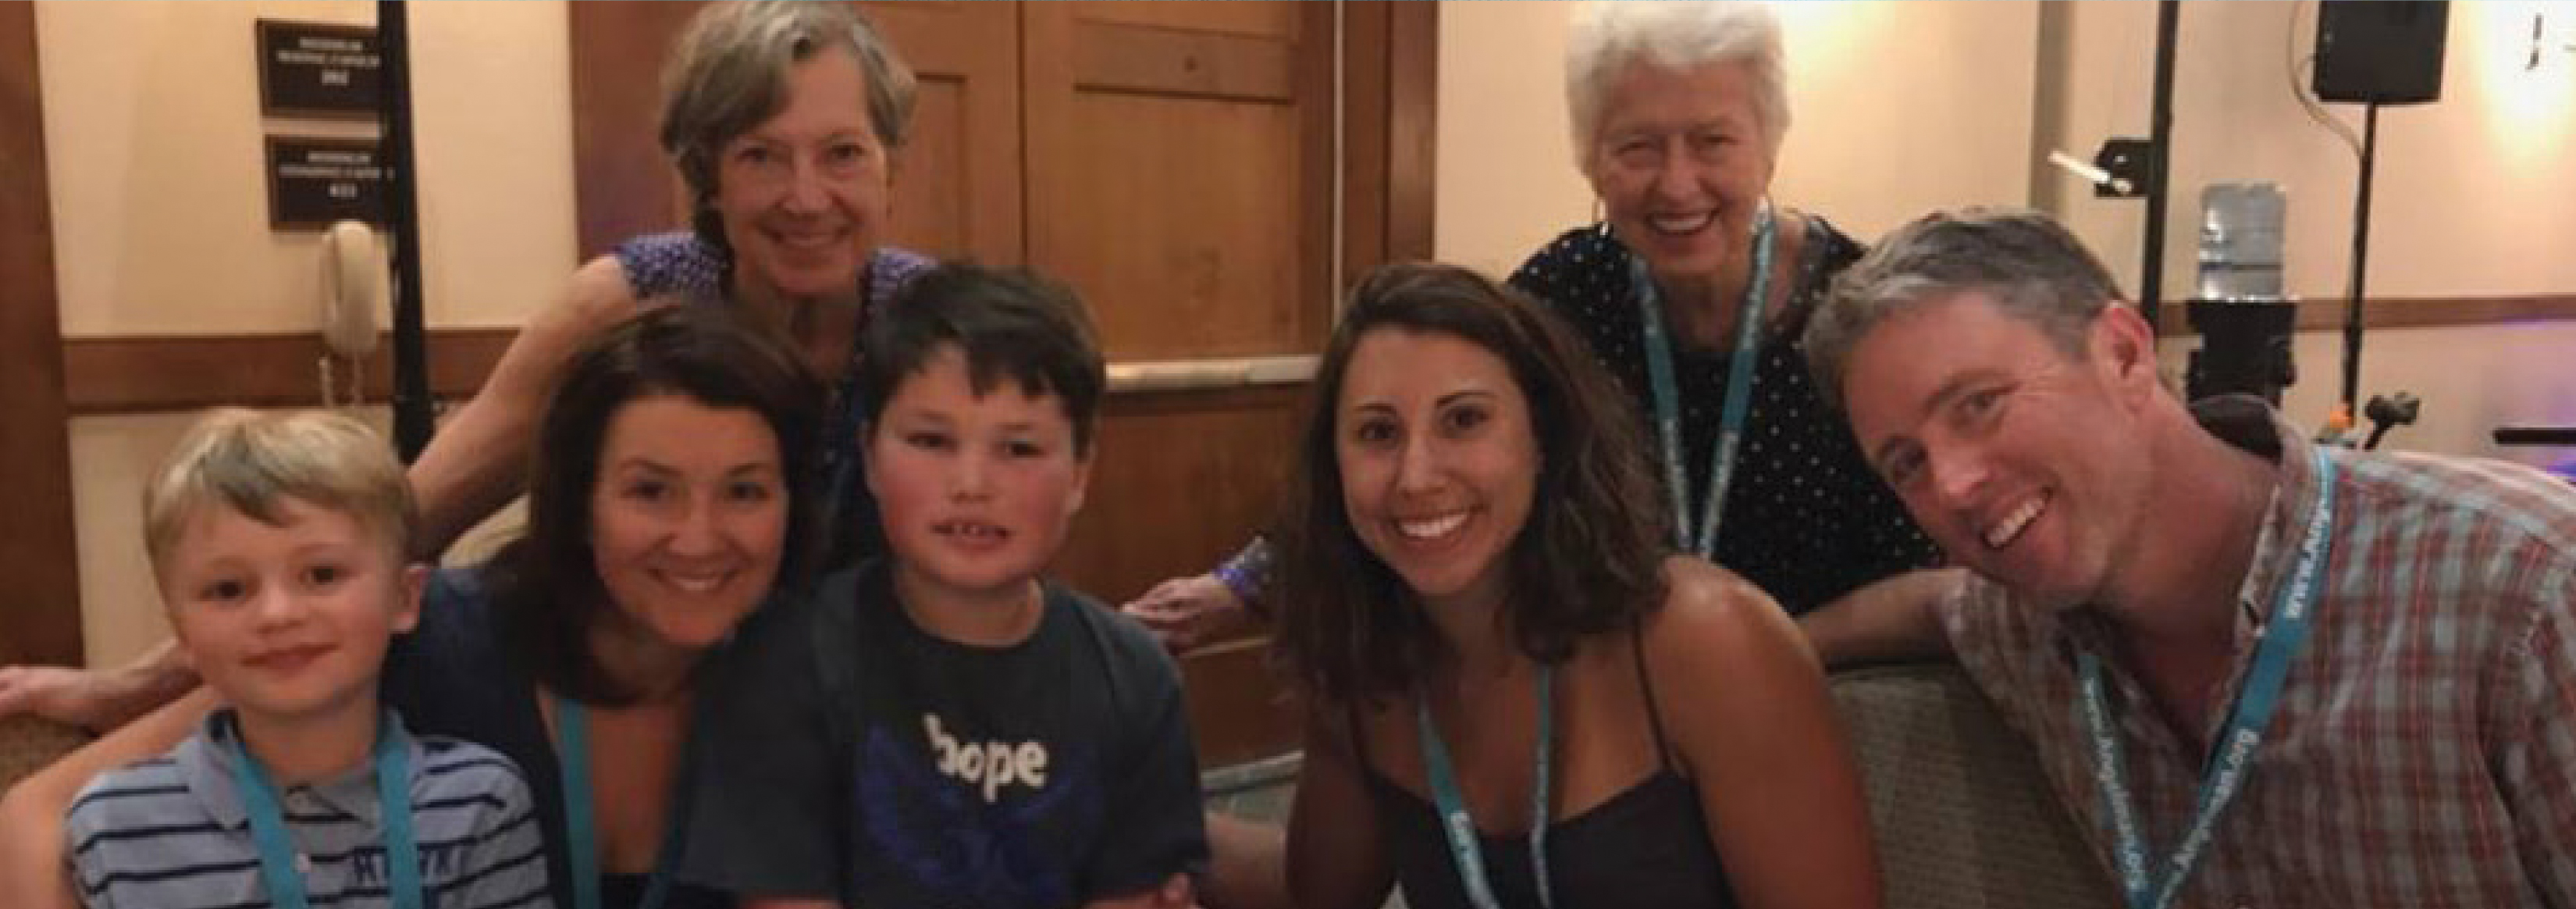 2017 Angelman Syndrome Foundation Family Conference